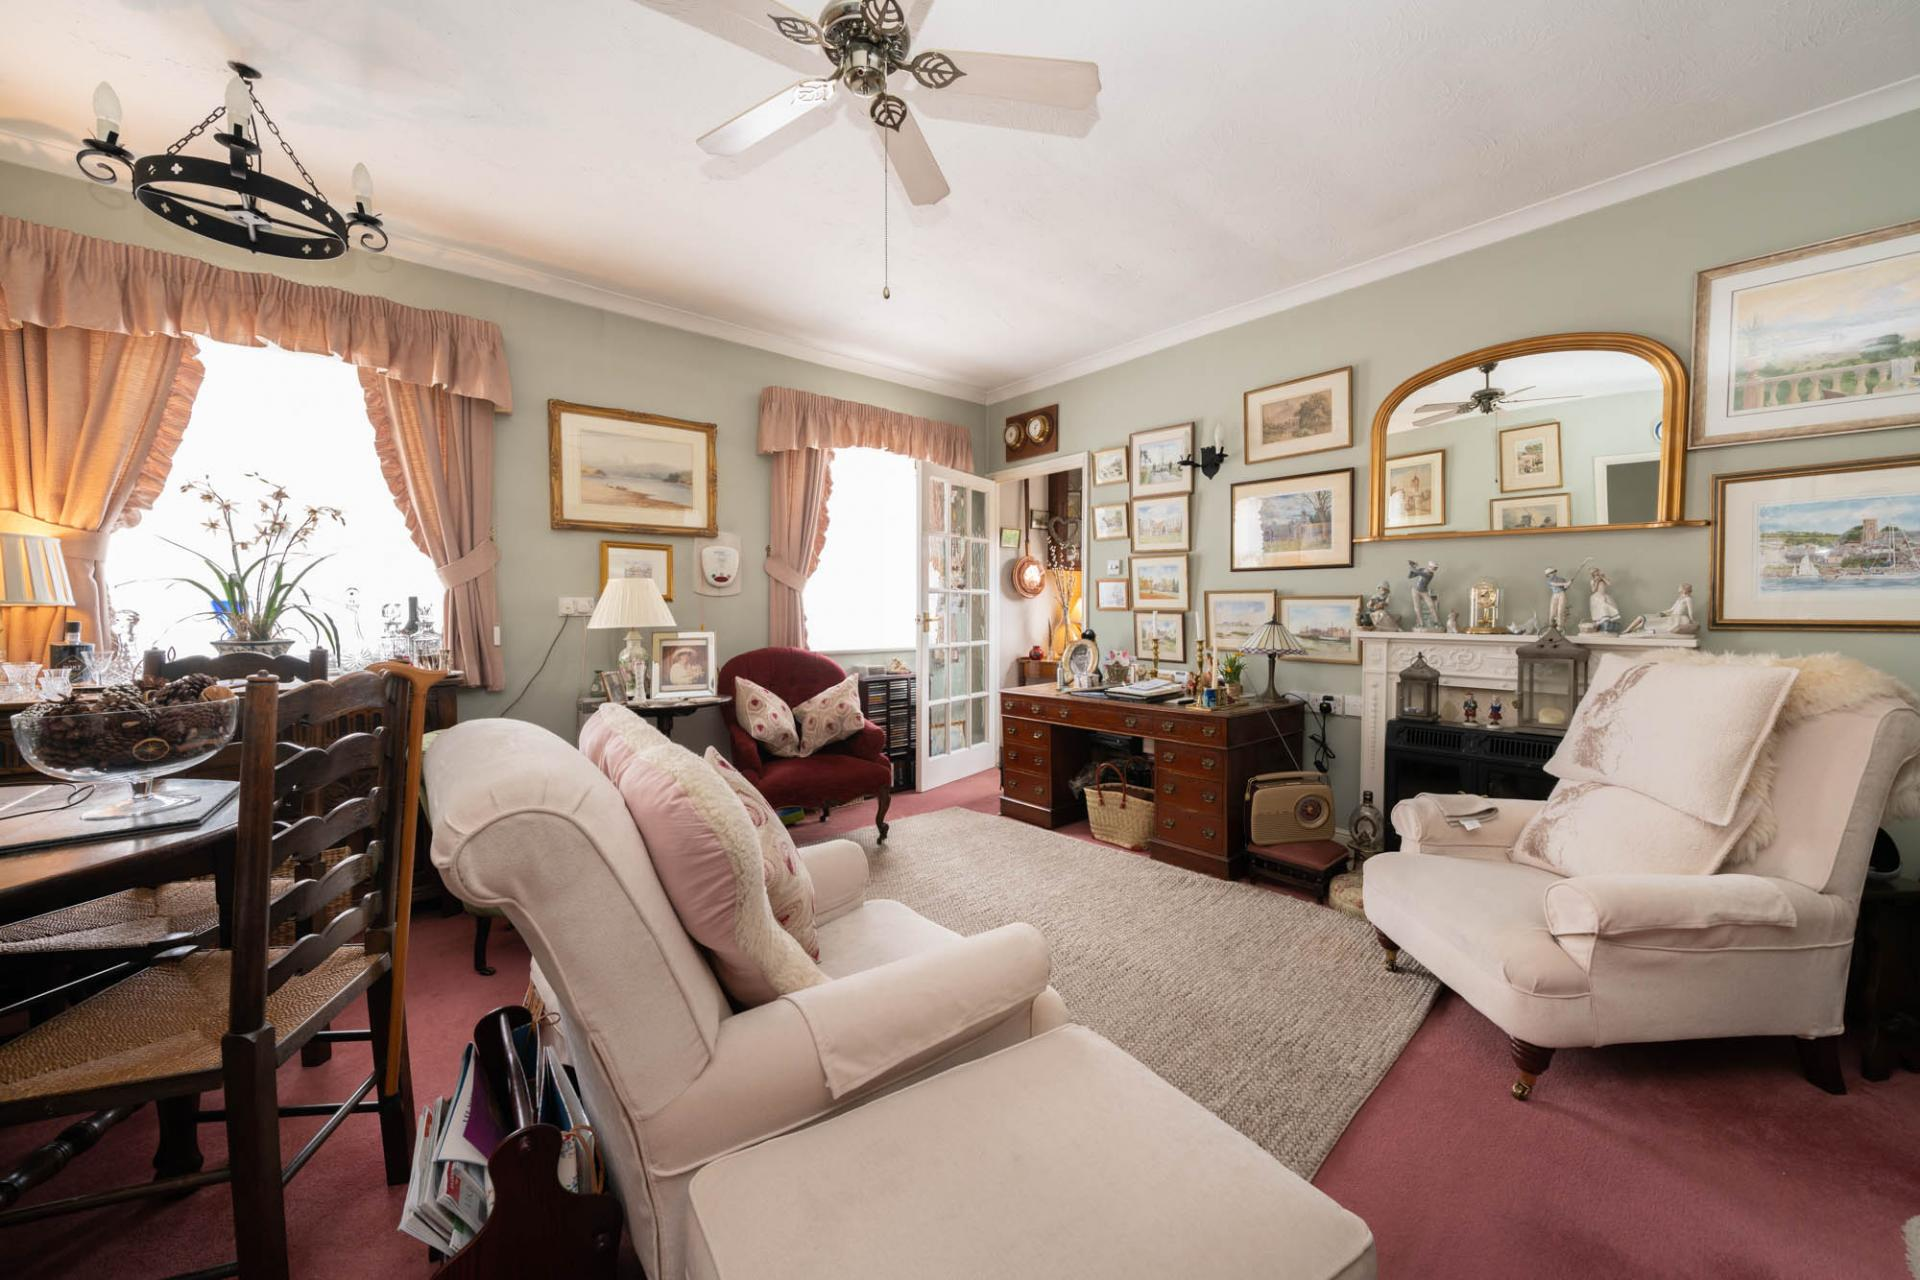 1 Bedroom Semi Detached House For Sale In St Albans